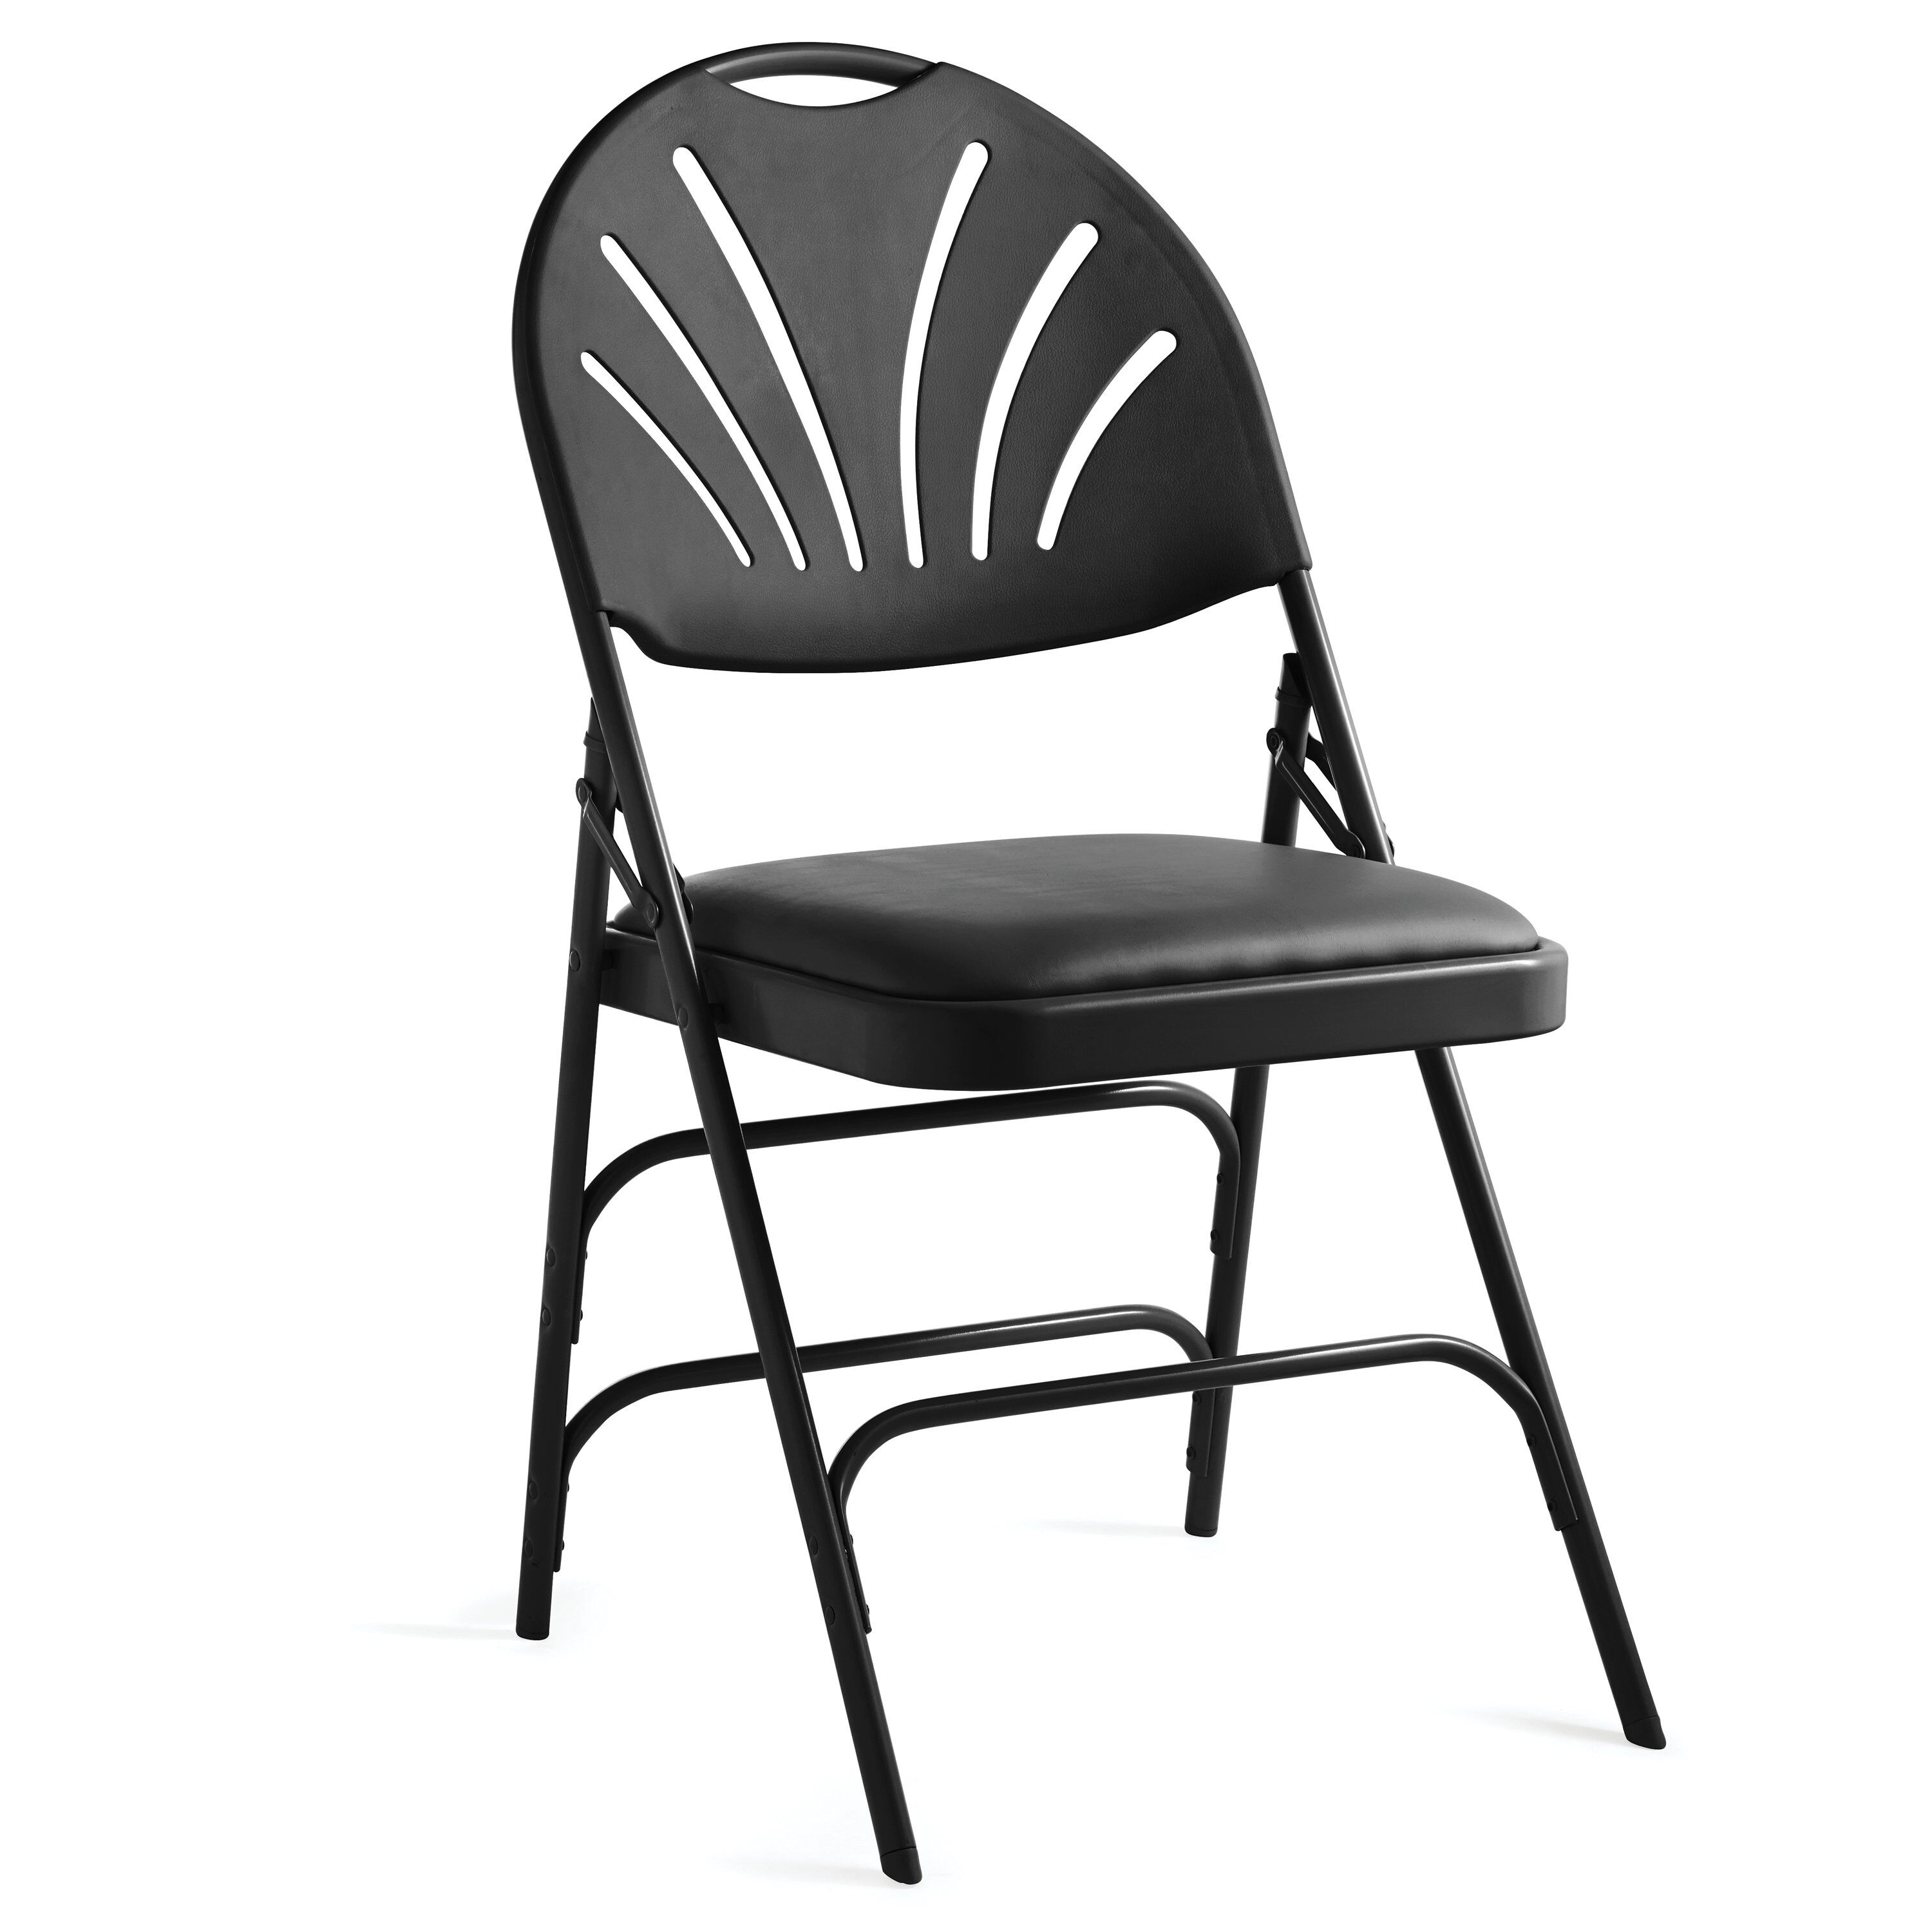 Samsonite XL Fanback Steel U0026 Vinyl Folding Chair (Case/4) In The Color  Black.